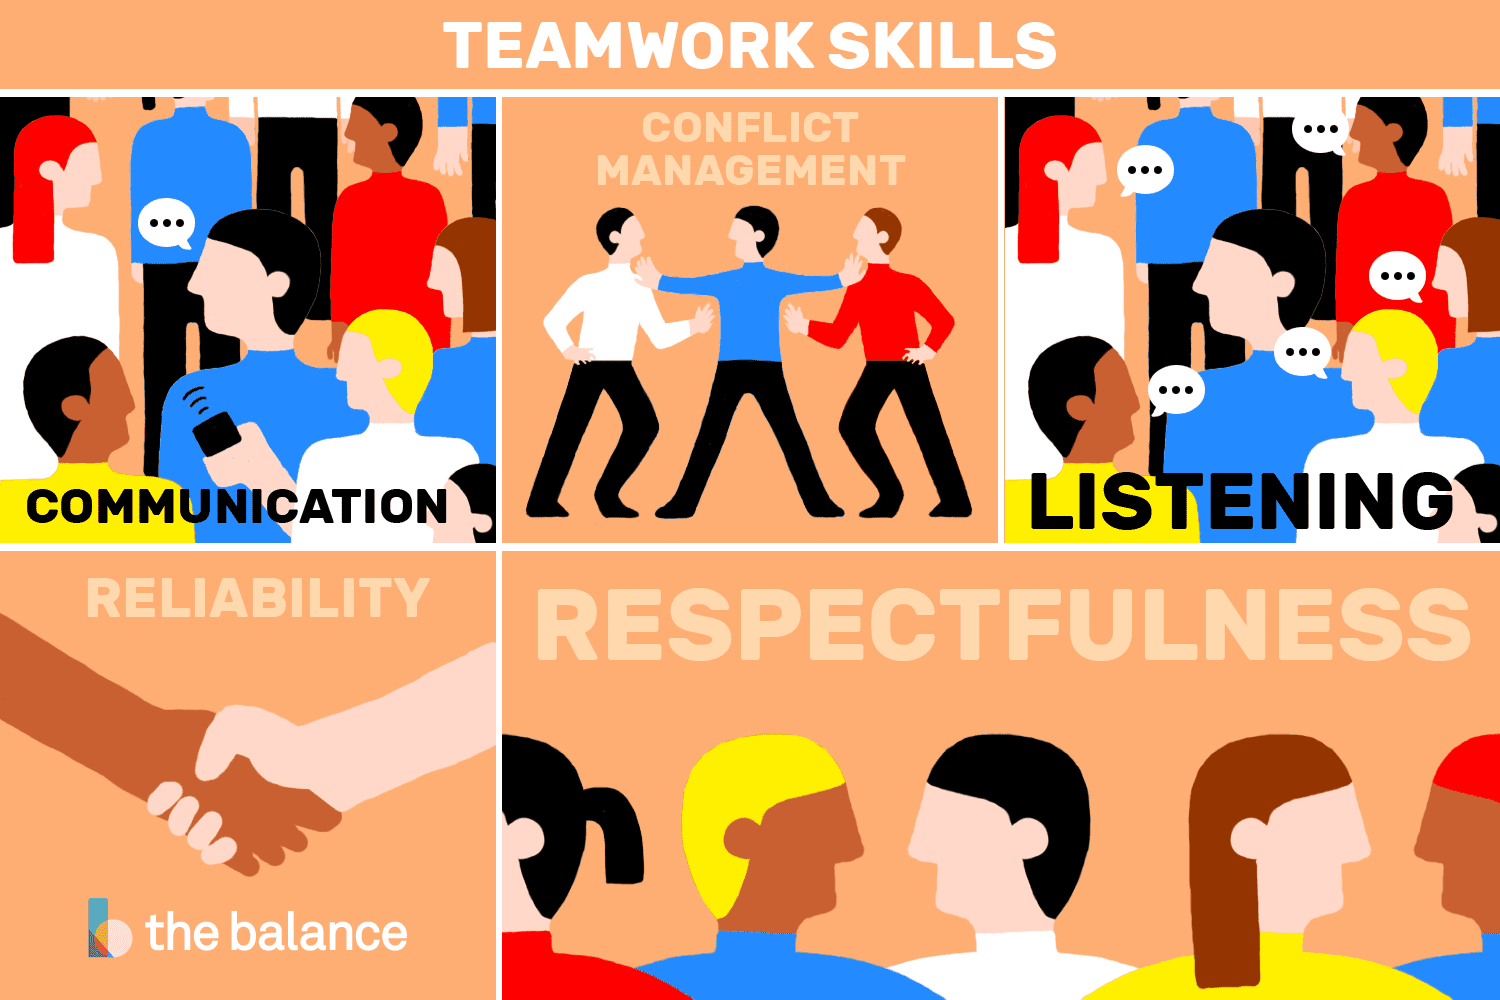 mportance of teamwork in the workplace peer reviewed article It is important to realize that not all peer-reviewed journals are created equal small or obscure journals may follow the rules and gain recognized peer-reviewed status, but be desperate for submissions and have a low bar for acceptance.